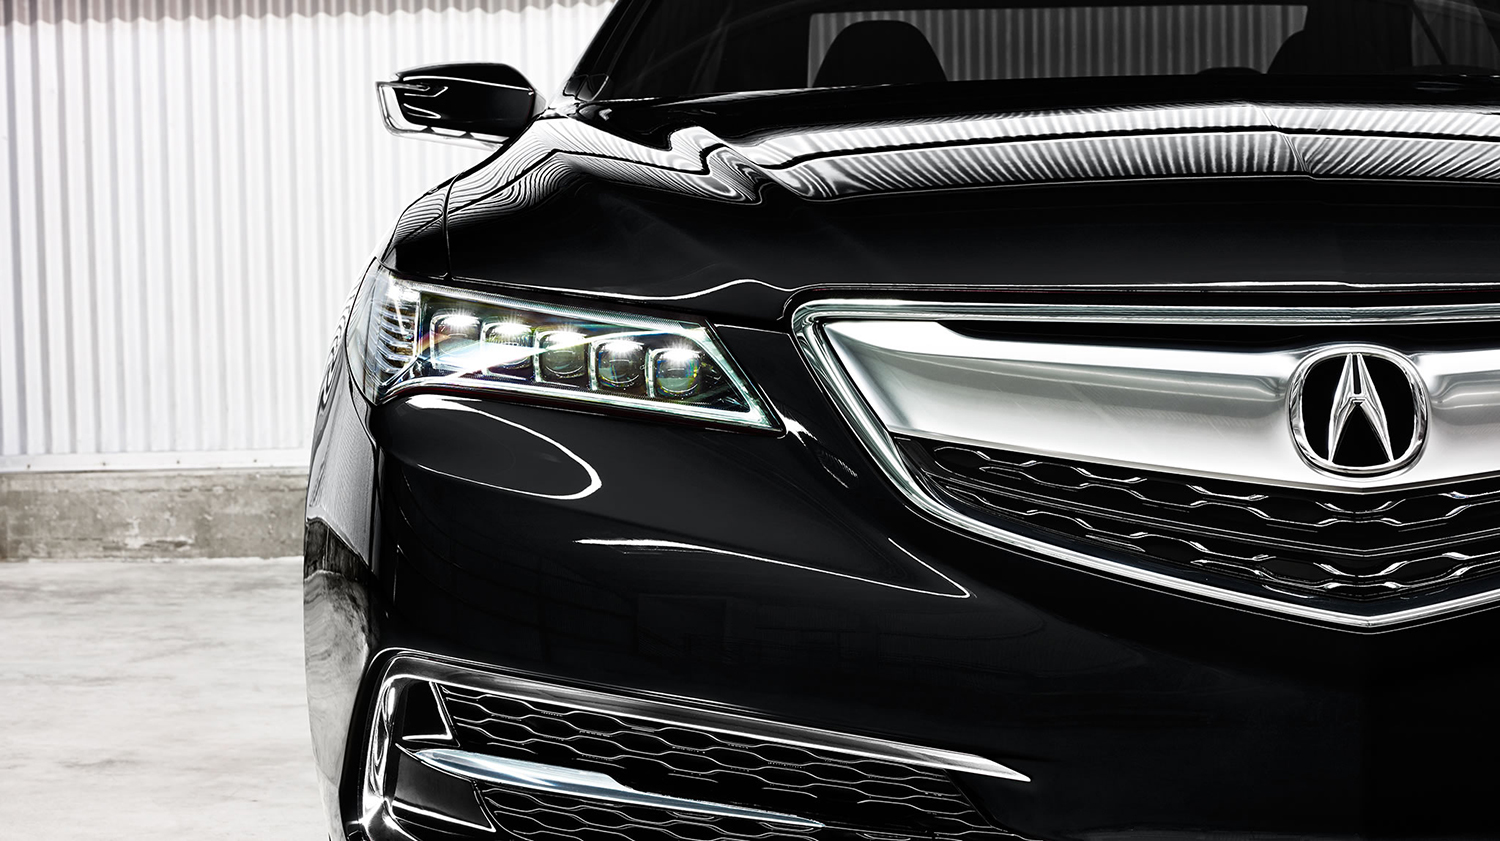 2017 Acura TLX Exterior Front Angle